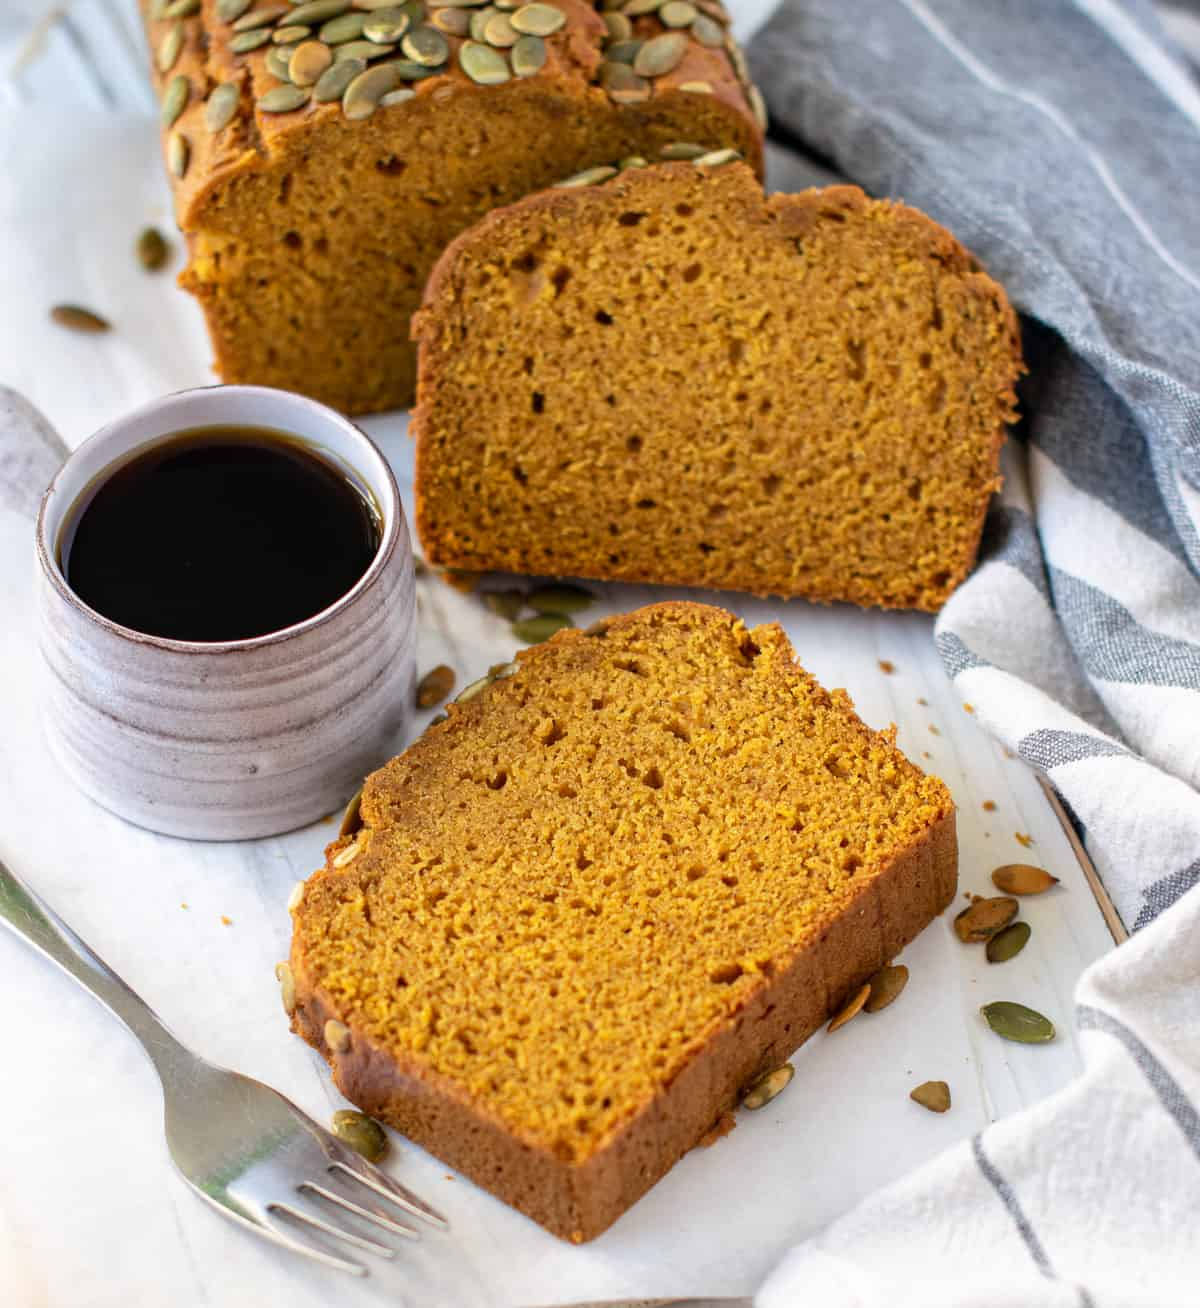 Slices of pumpkin bread served with coffee and a fork